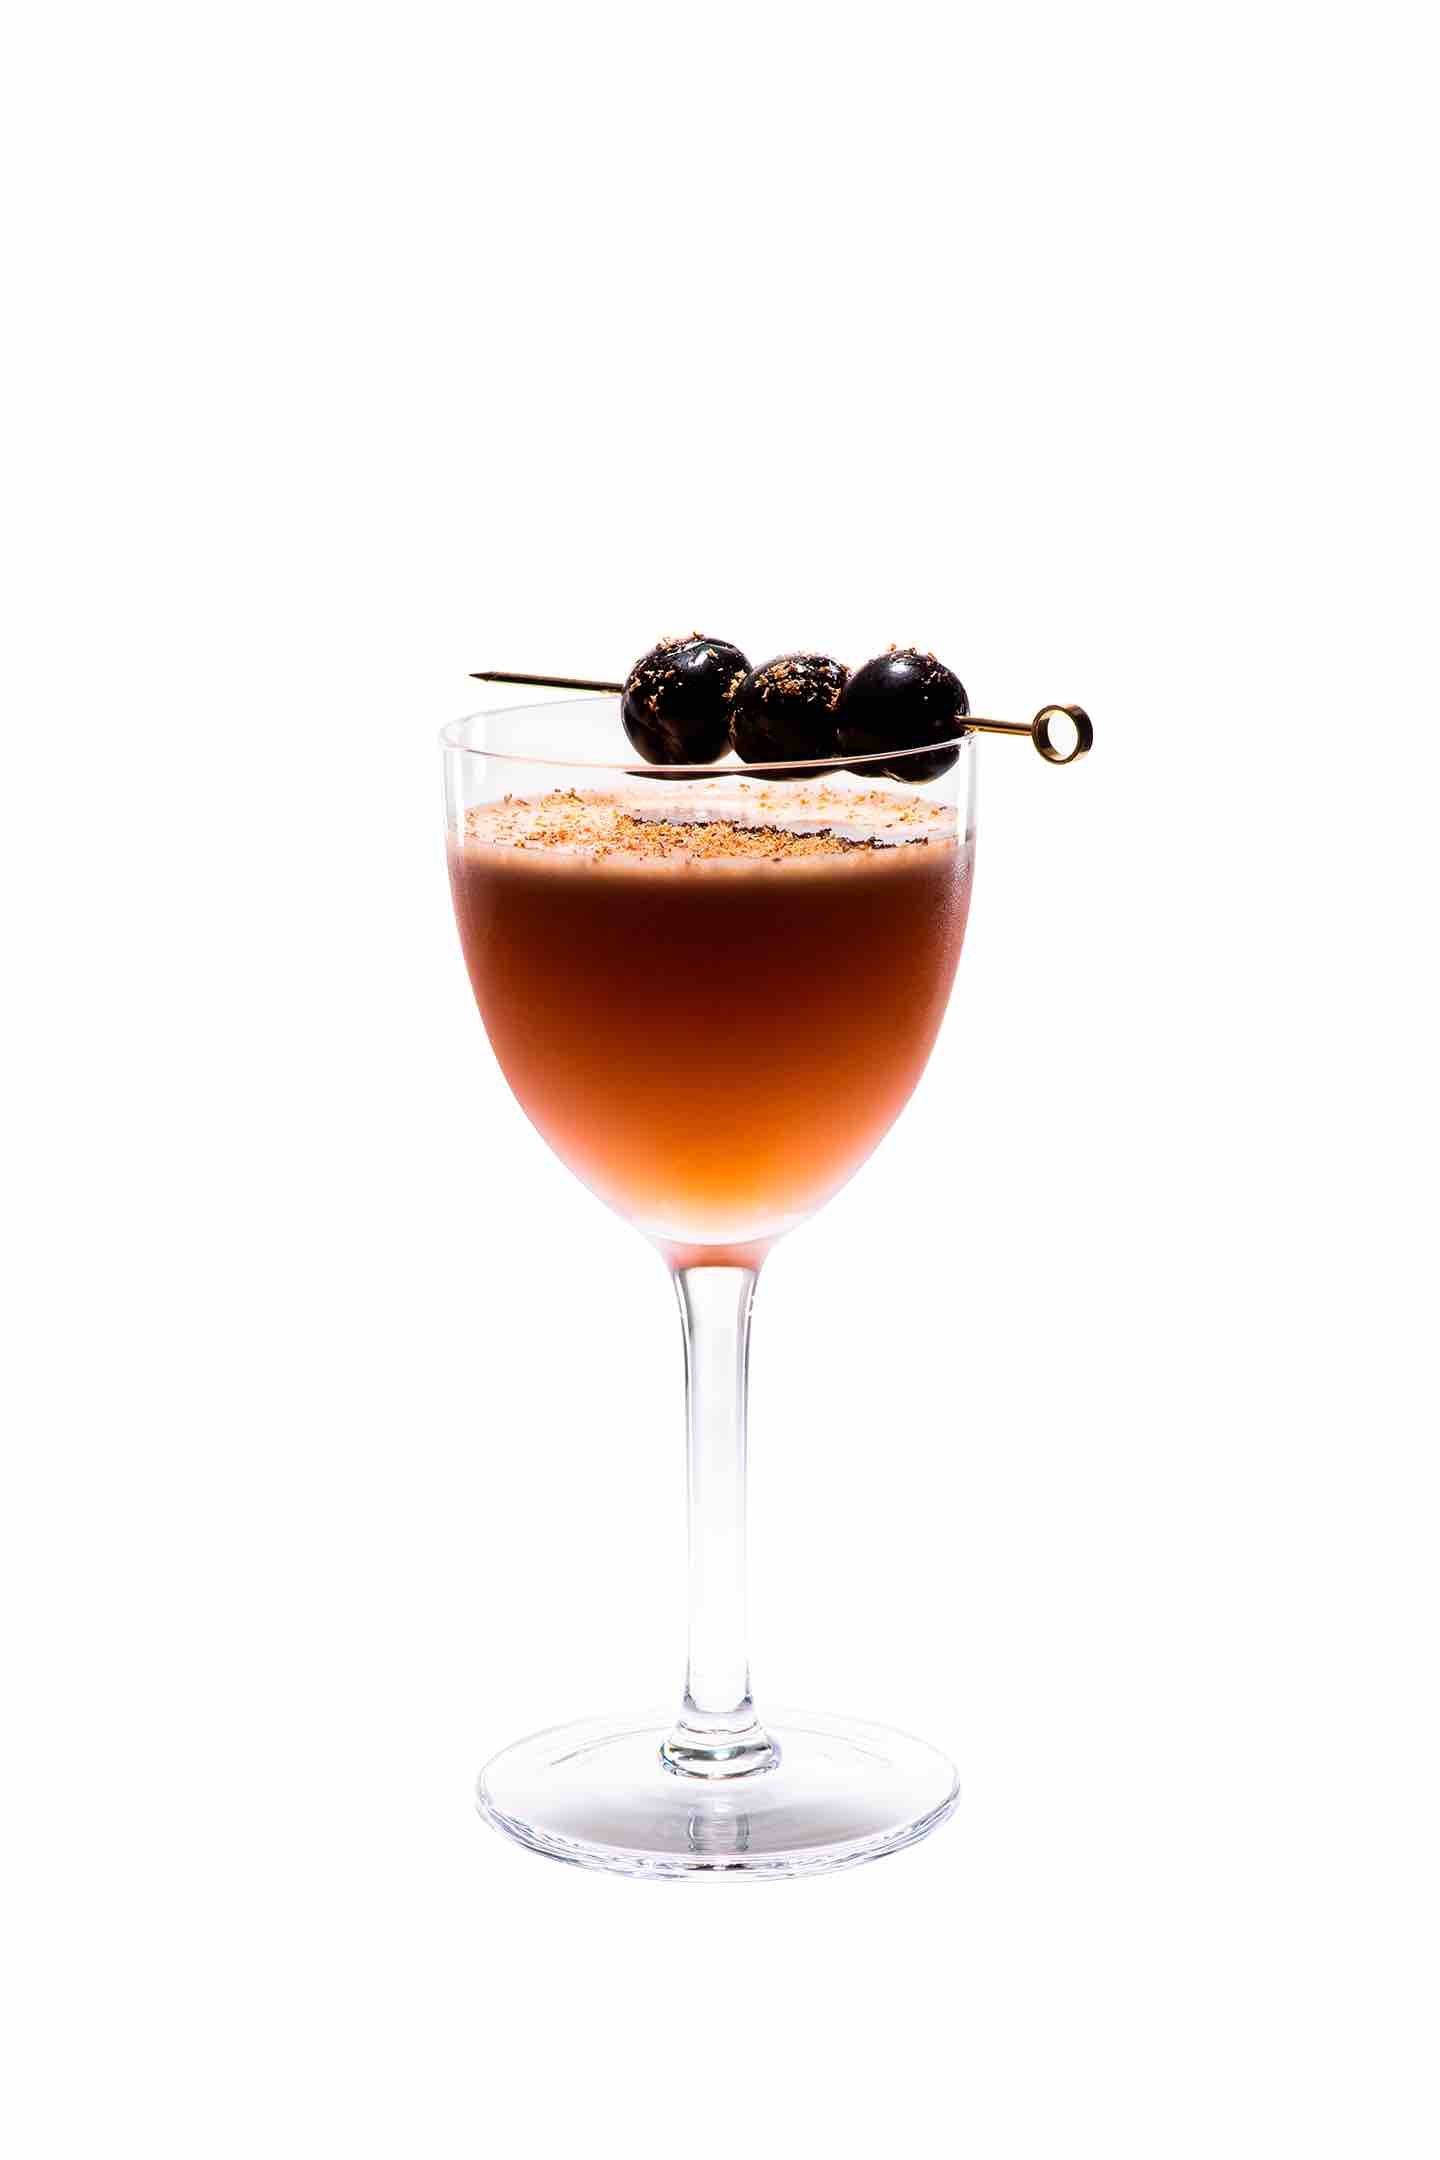 We Have Listed 7 Drinks To Mix With Cognac